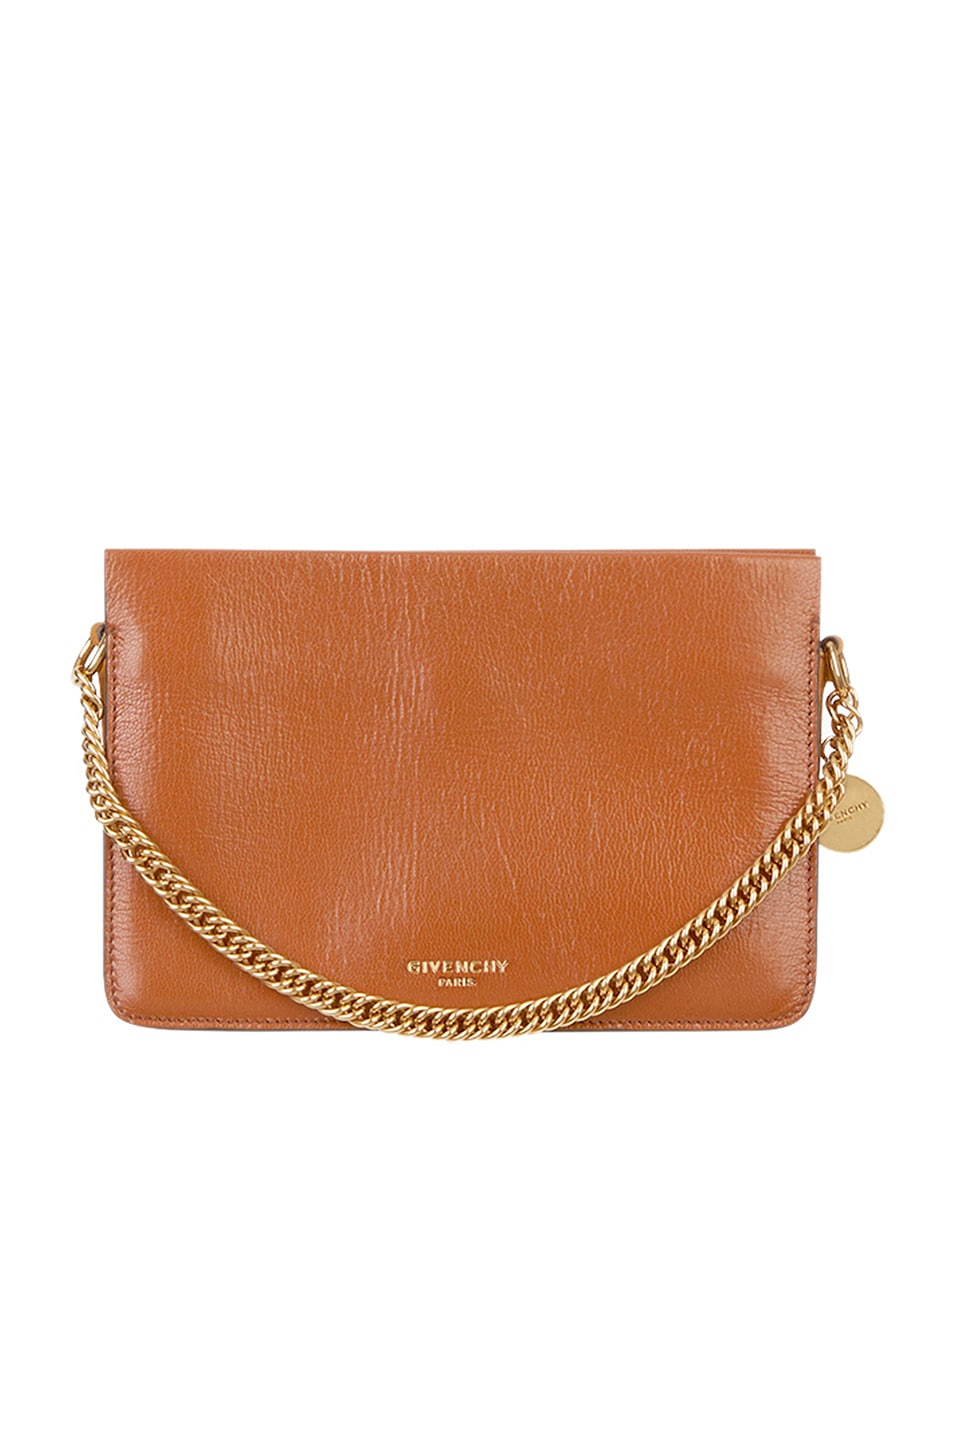 Image 1 of Givenchy Leather Crossbody Bag in Chestnut